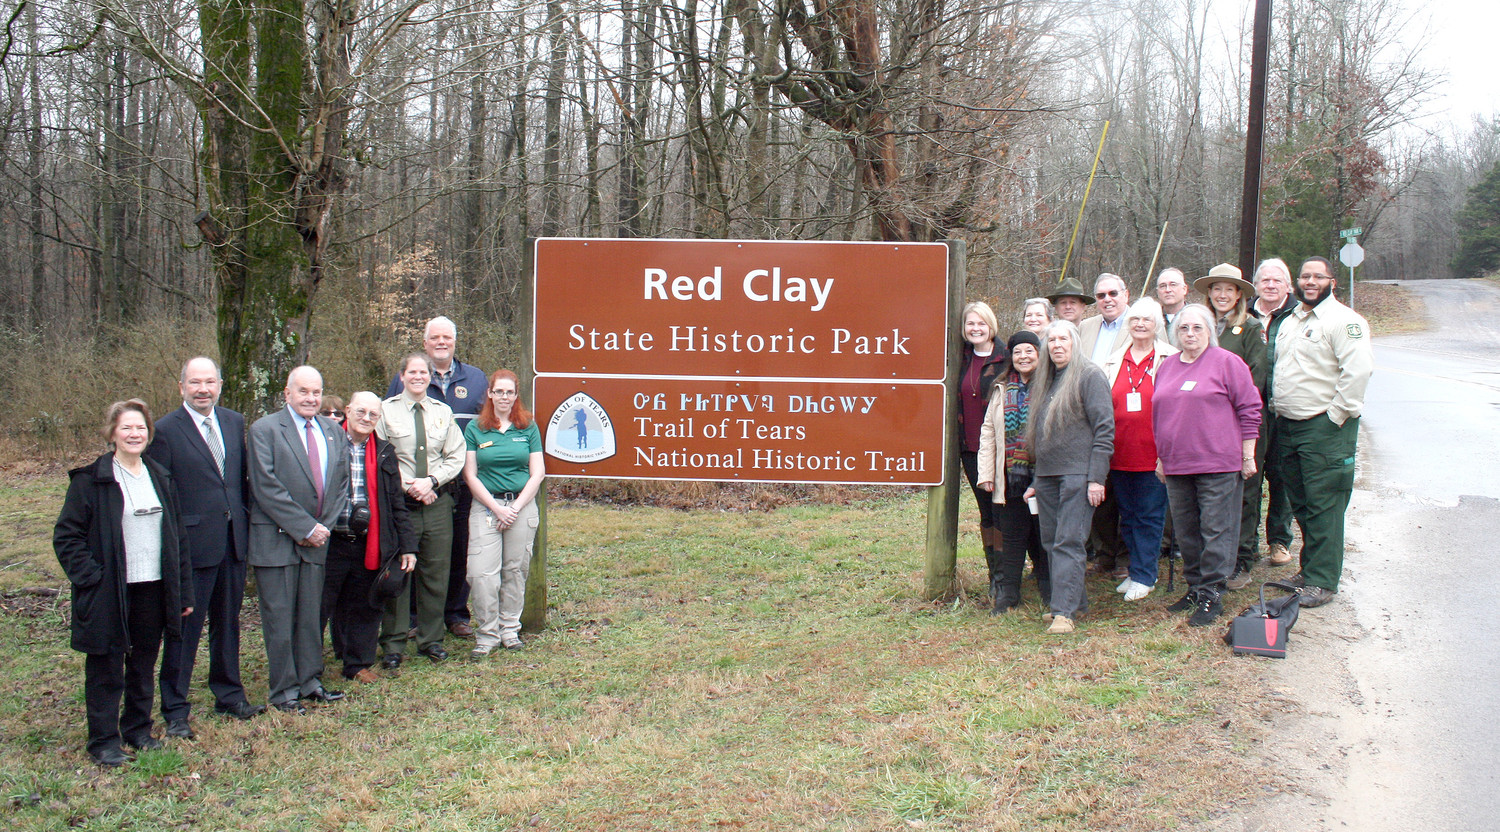 A LARGE GROUP of historians, Tennessee State Parks workers and members of various Native American-centered groups attended the unveiling of Red Clay's new sign. The sign designates the park as part of the National Historic Trail of Tears. The park hopes to imbue pride in Native Americans who visit by having the first portion of the sign in the Native Cherokee language.